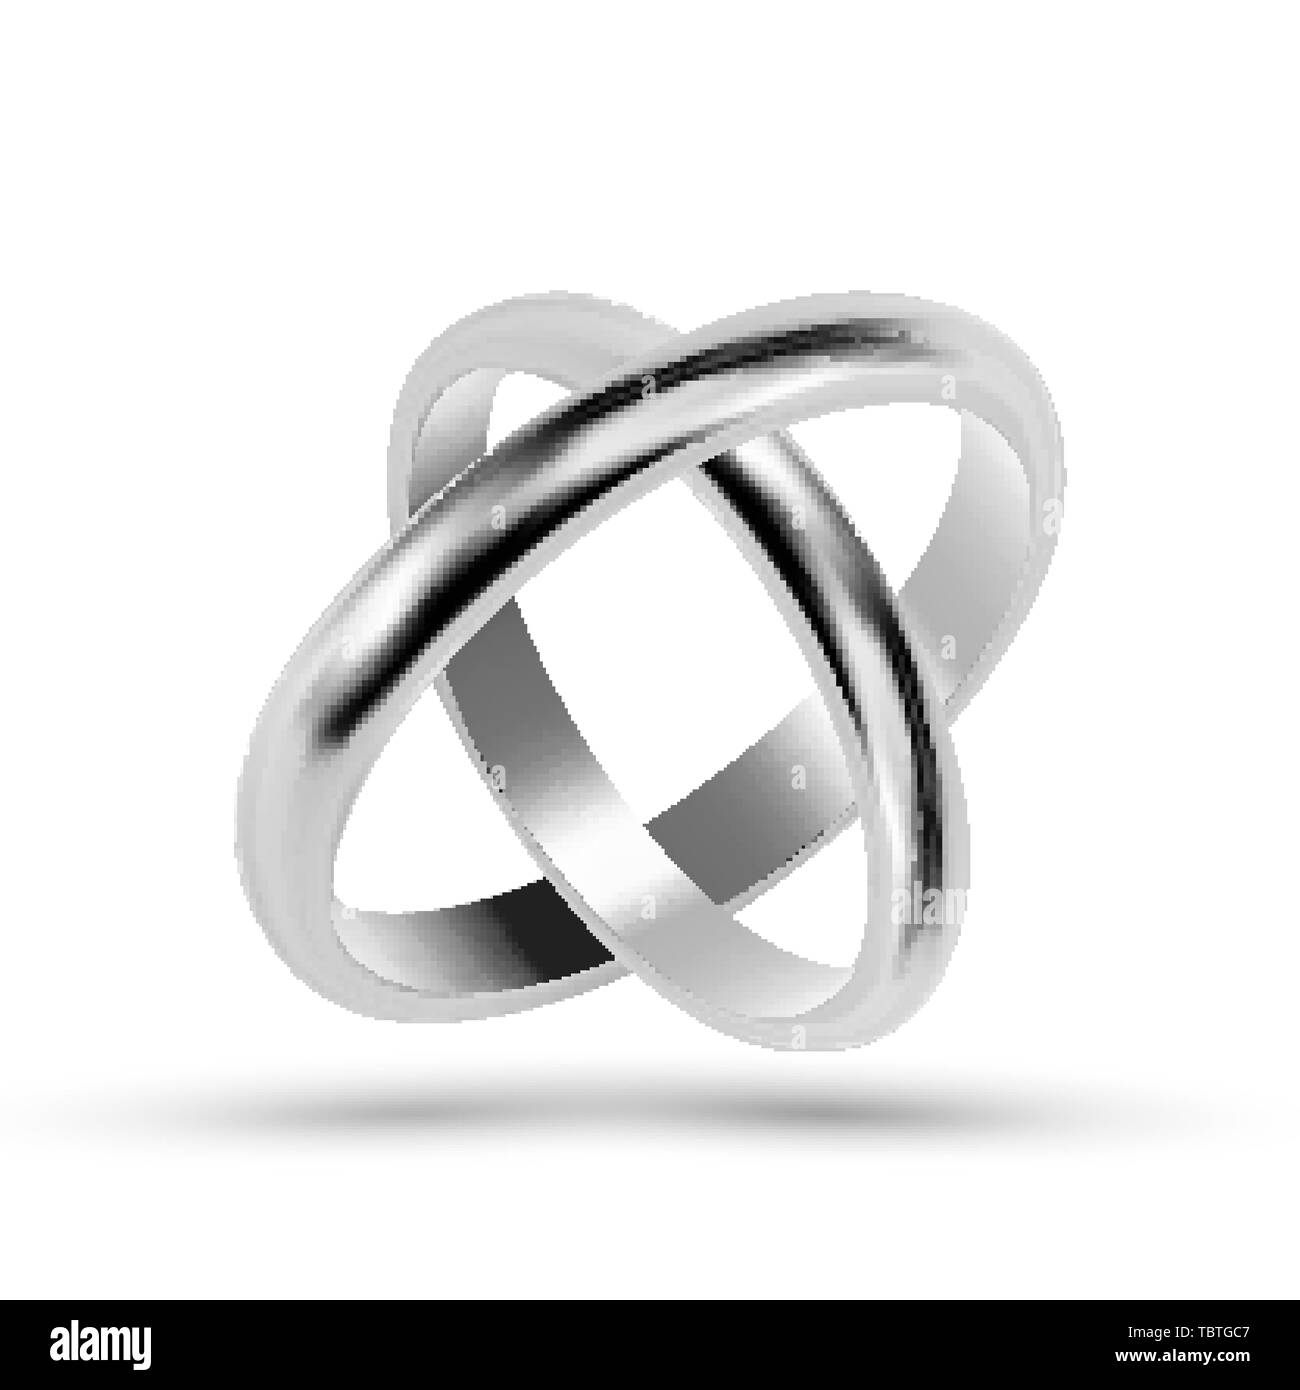 Silver Or Platinum Jewelry Wedding Rings Vector - Stock Image